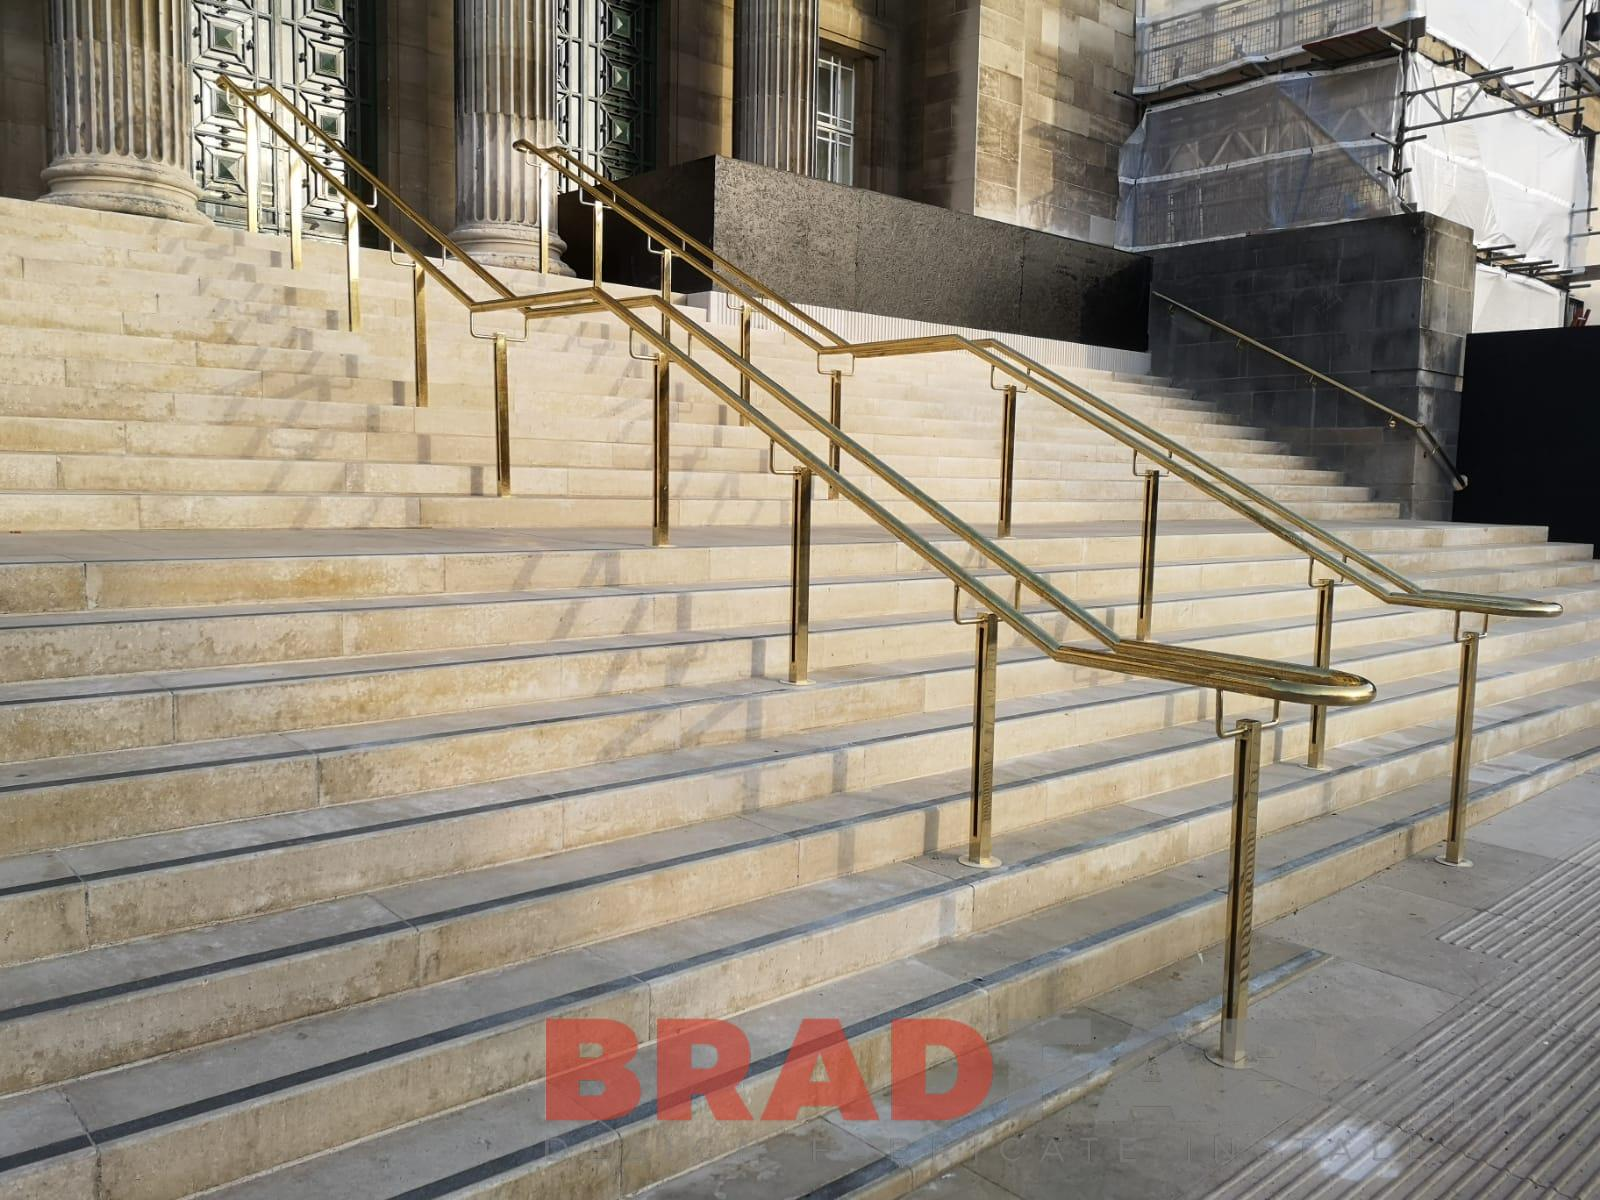 Brass balustrade and handrails by Bradfabs